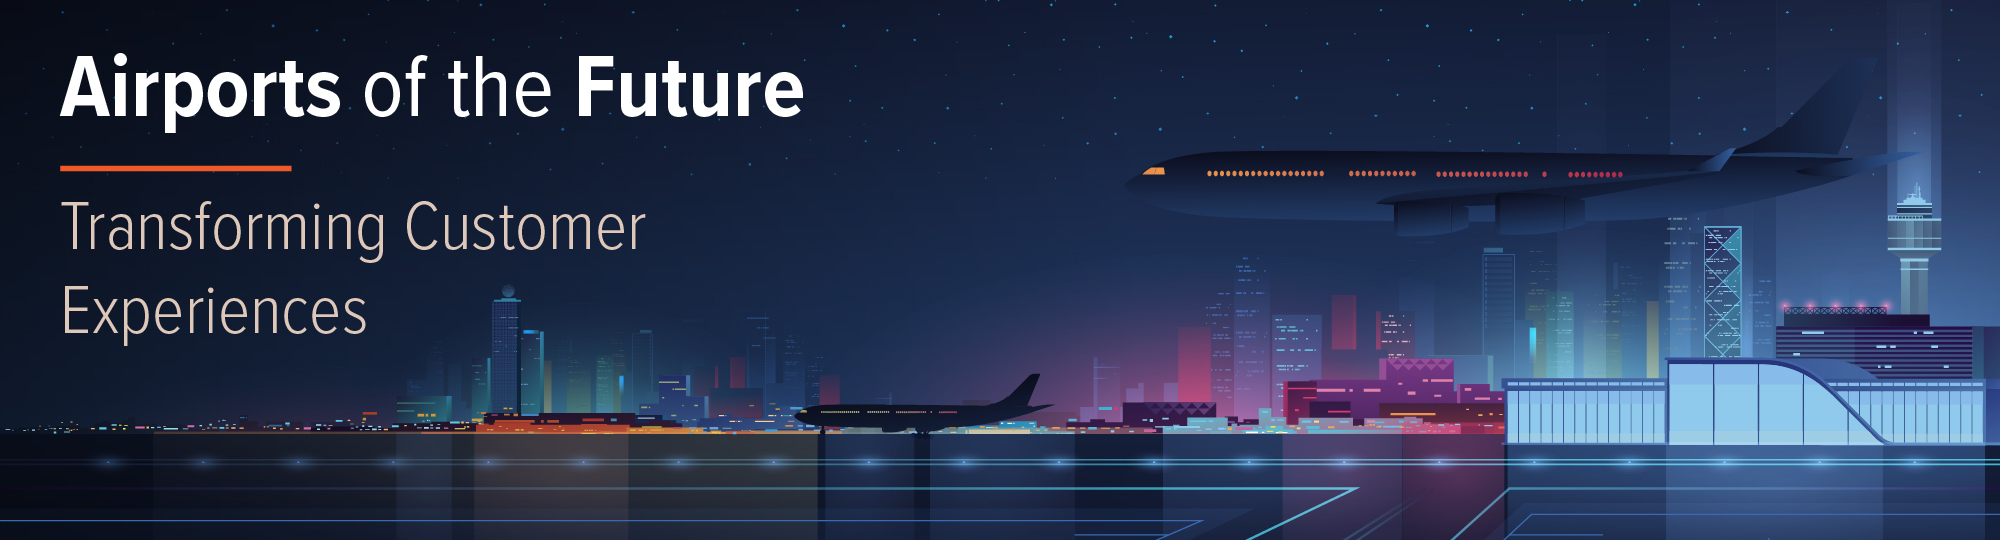 IoT in Airports-01